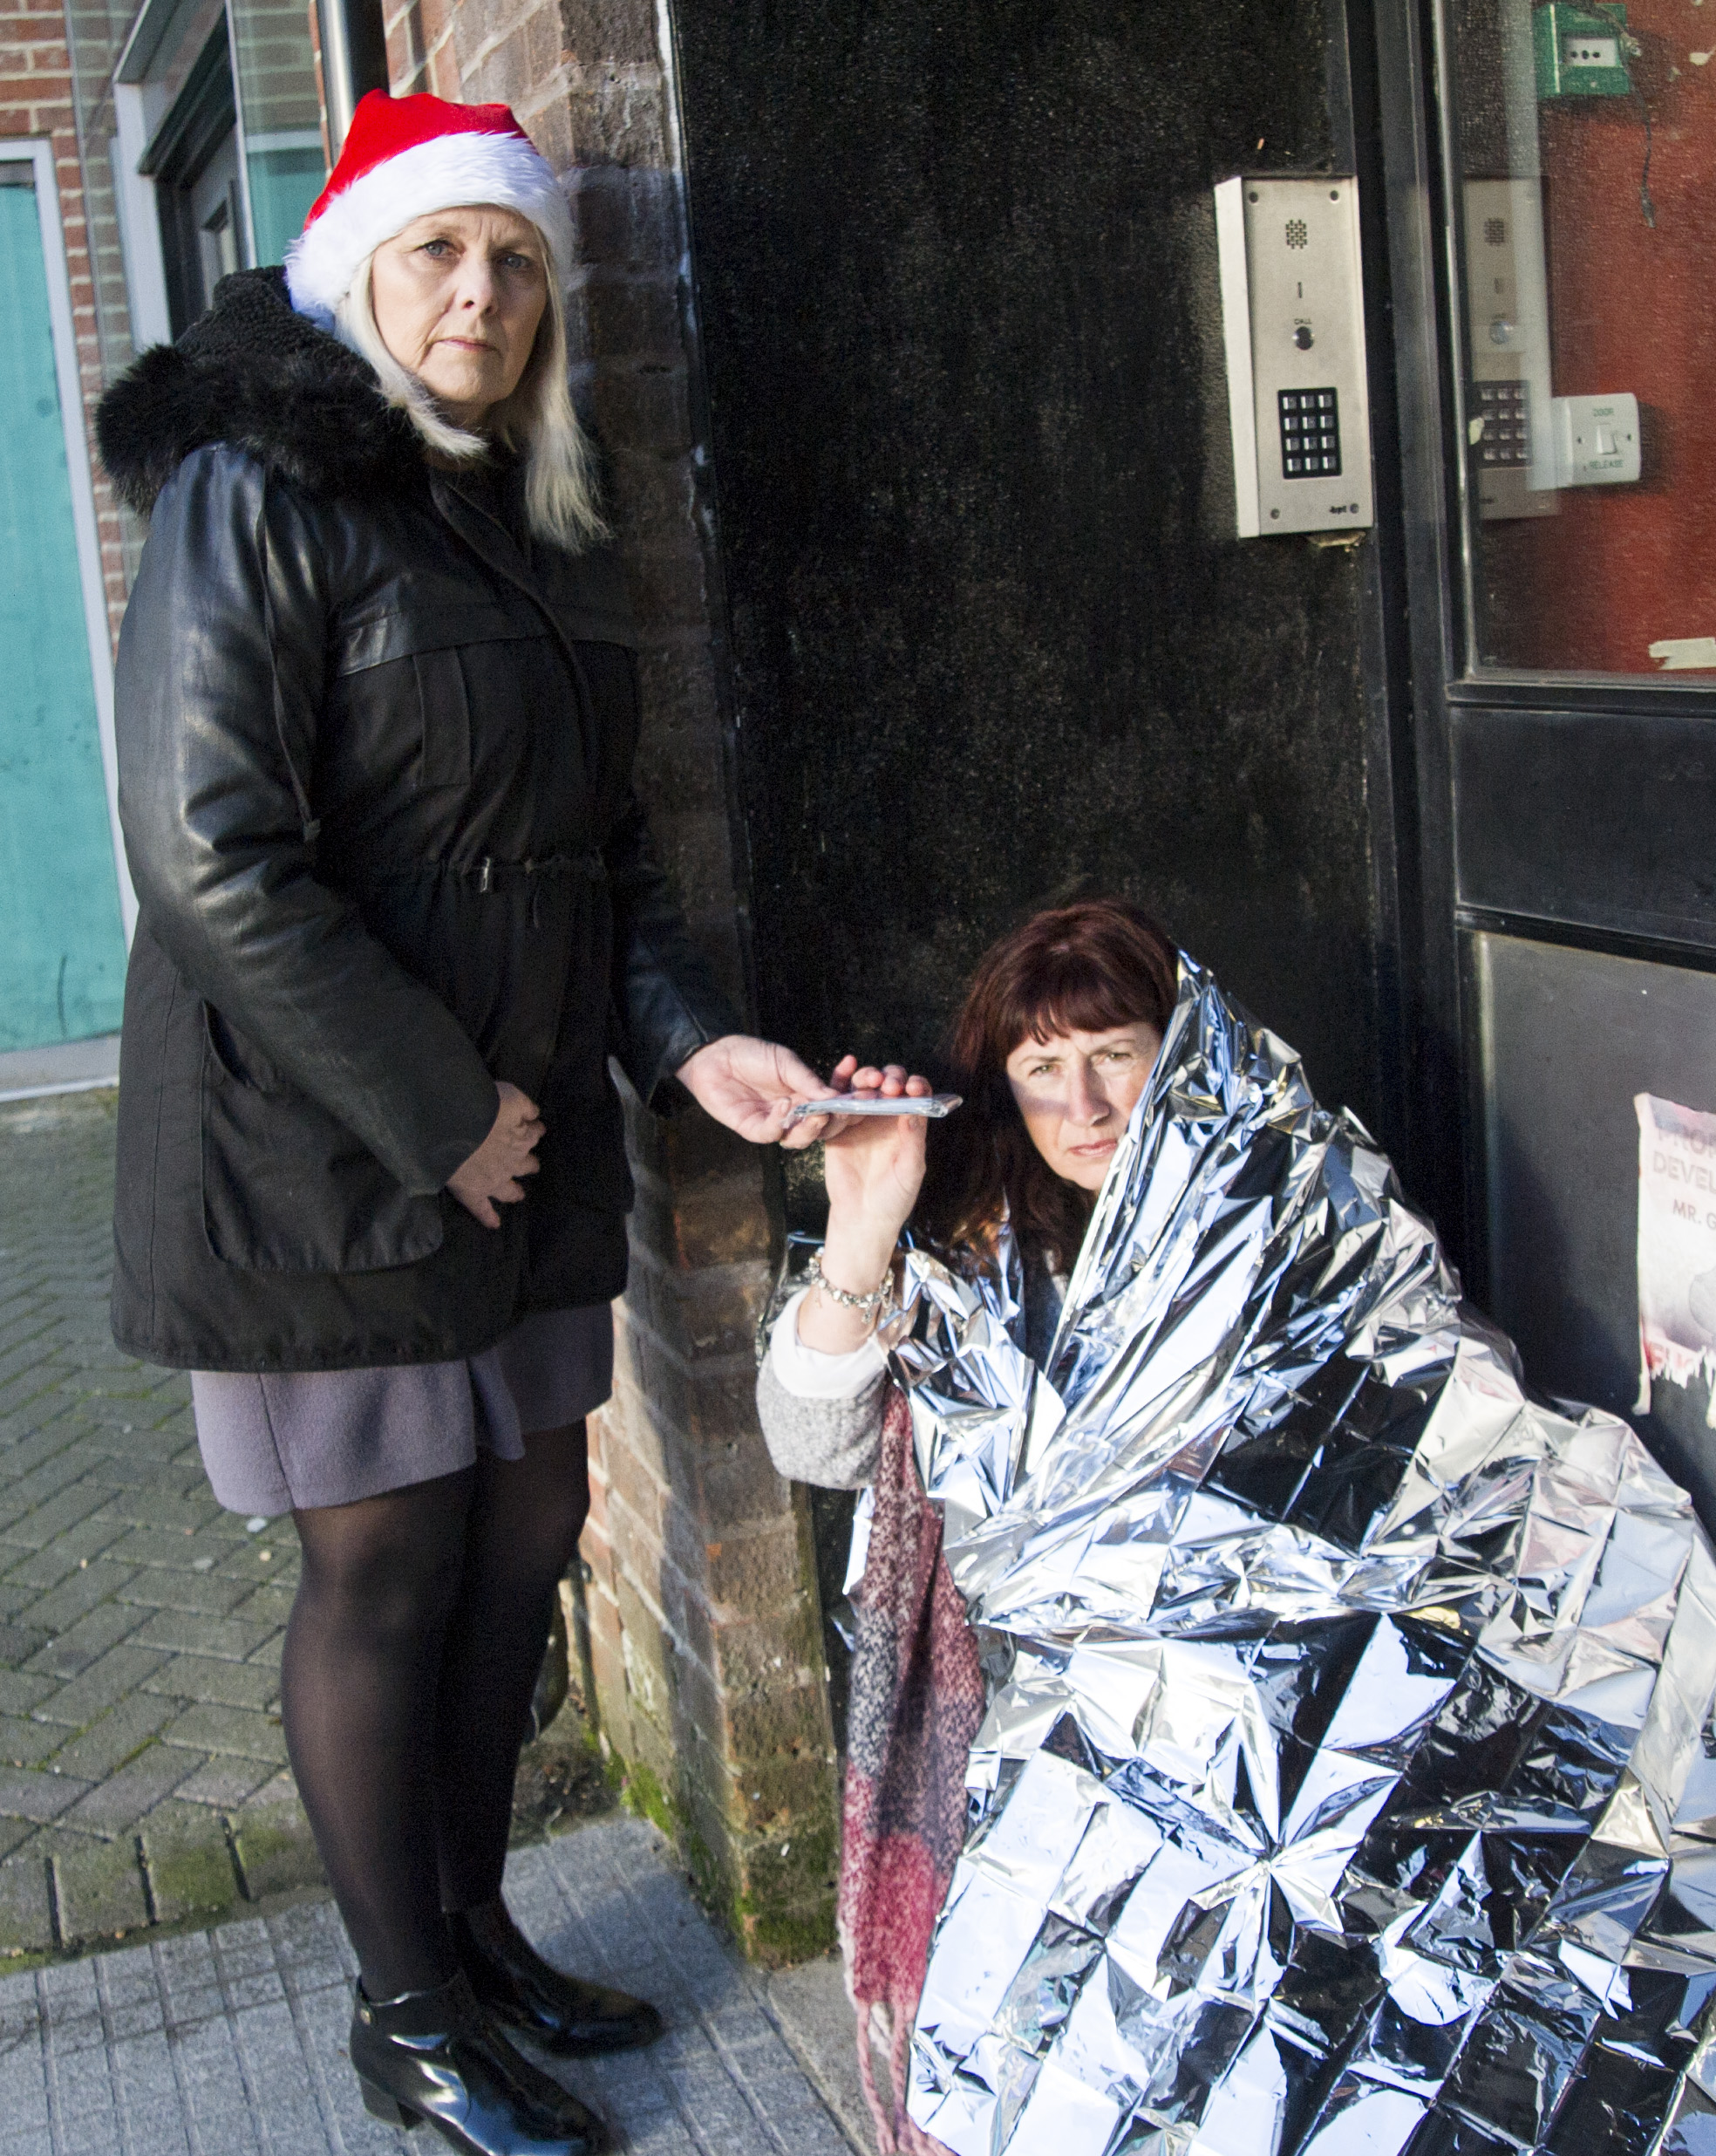 Many initiatives have been launched to help the homeless and others in need at Christmas